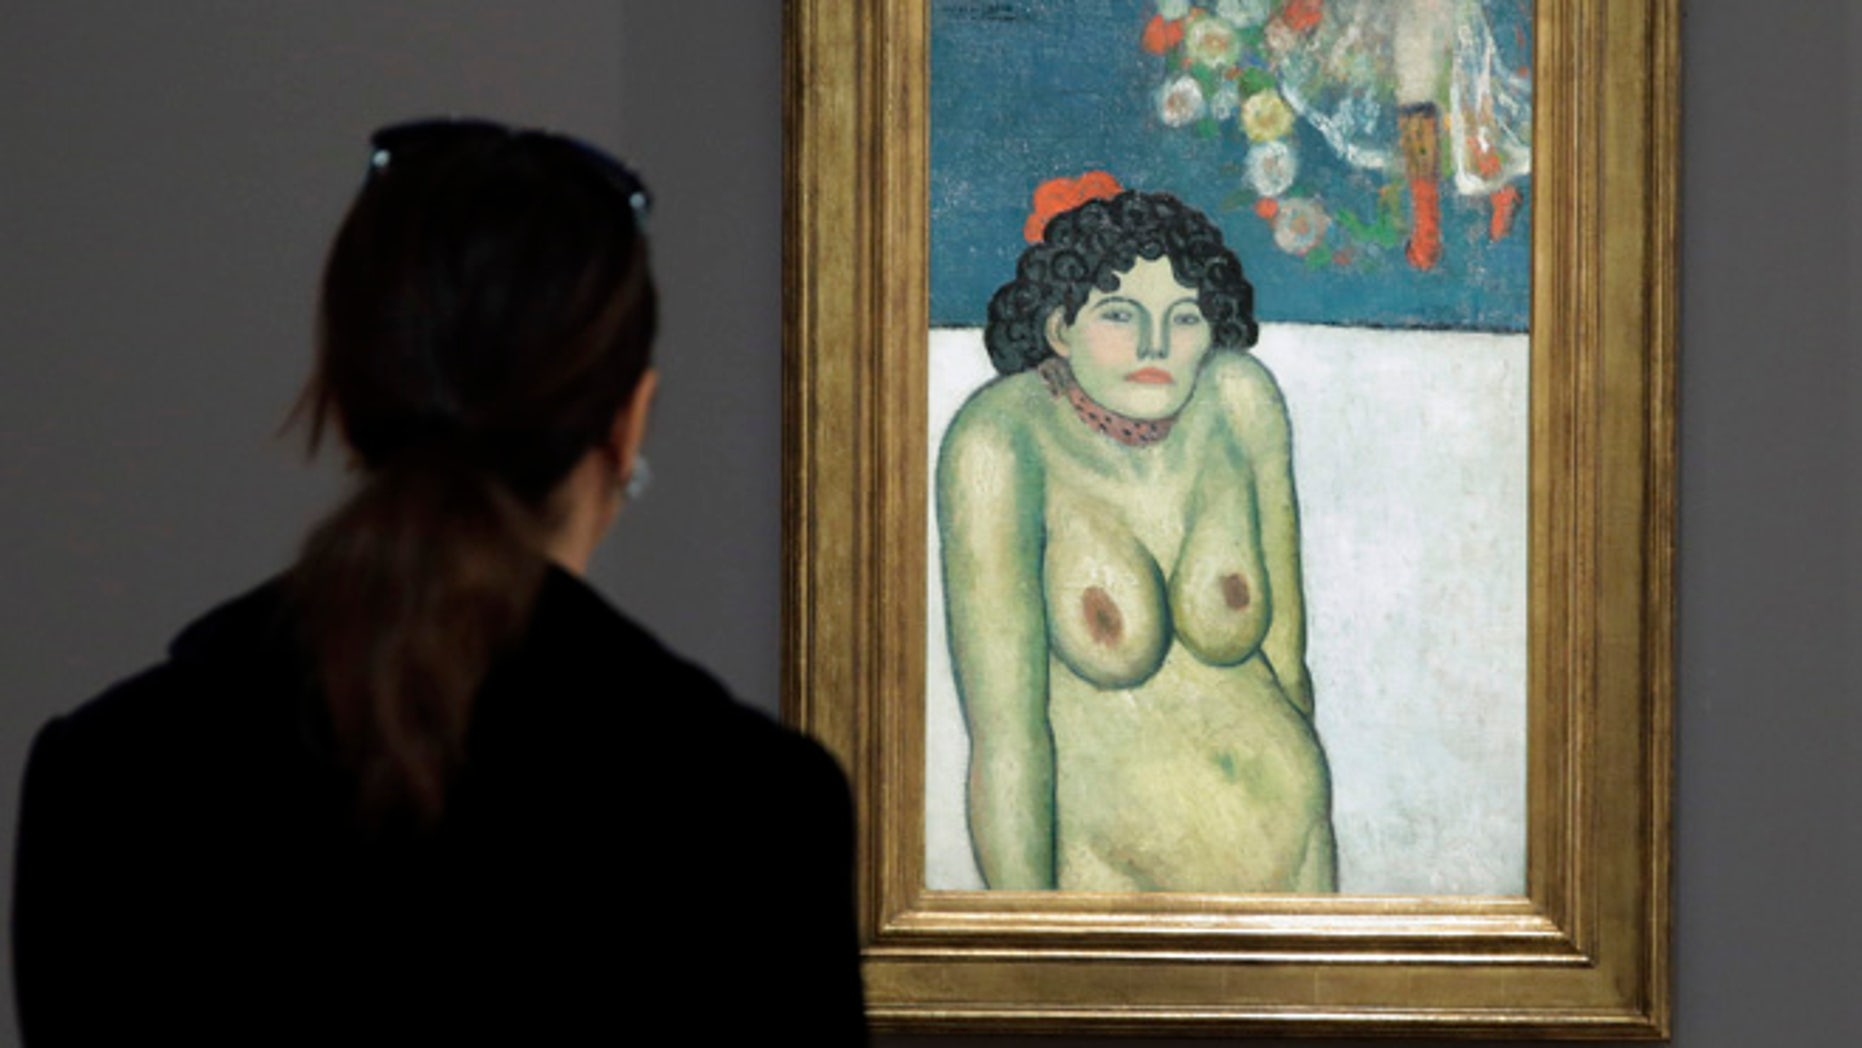 "FILE - This Oct. 30, 2015 file photo shows ""The Nightclub Singer,â a 1901 painting by Picasso from his Blue Period, at Sotheby's in New York. The work features a second picture on the reverse side depicting Picassoâs art dealer, Pere Manach. The piece is estimated to fetch $60 million on Thursday night, Nov. 5, 2015 at Sothebyâs fall art auction. (AP Photo/Richard Drew, File)"